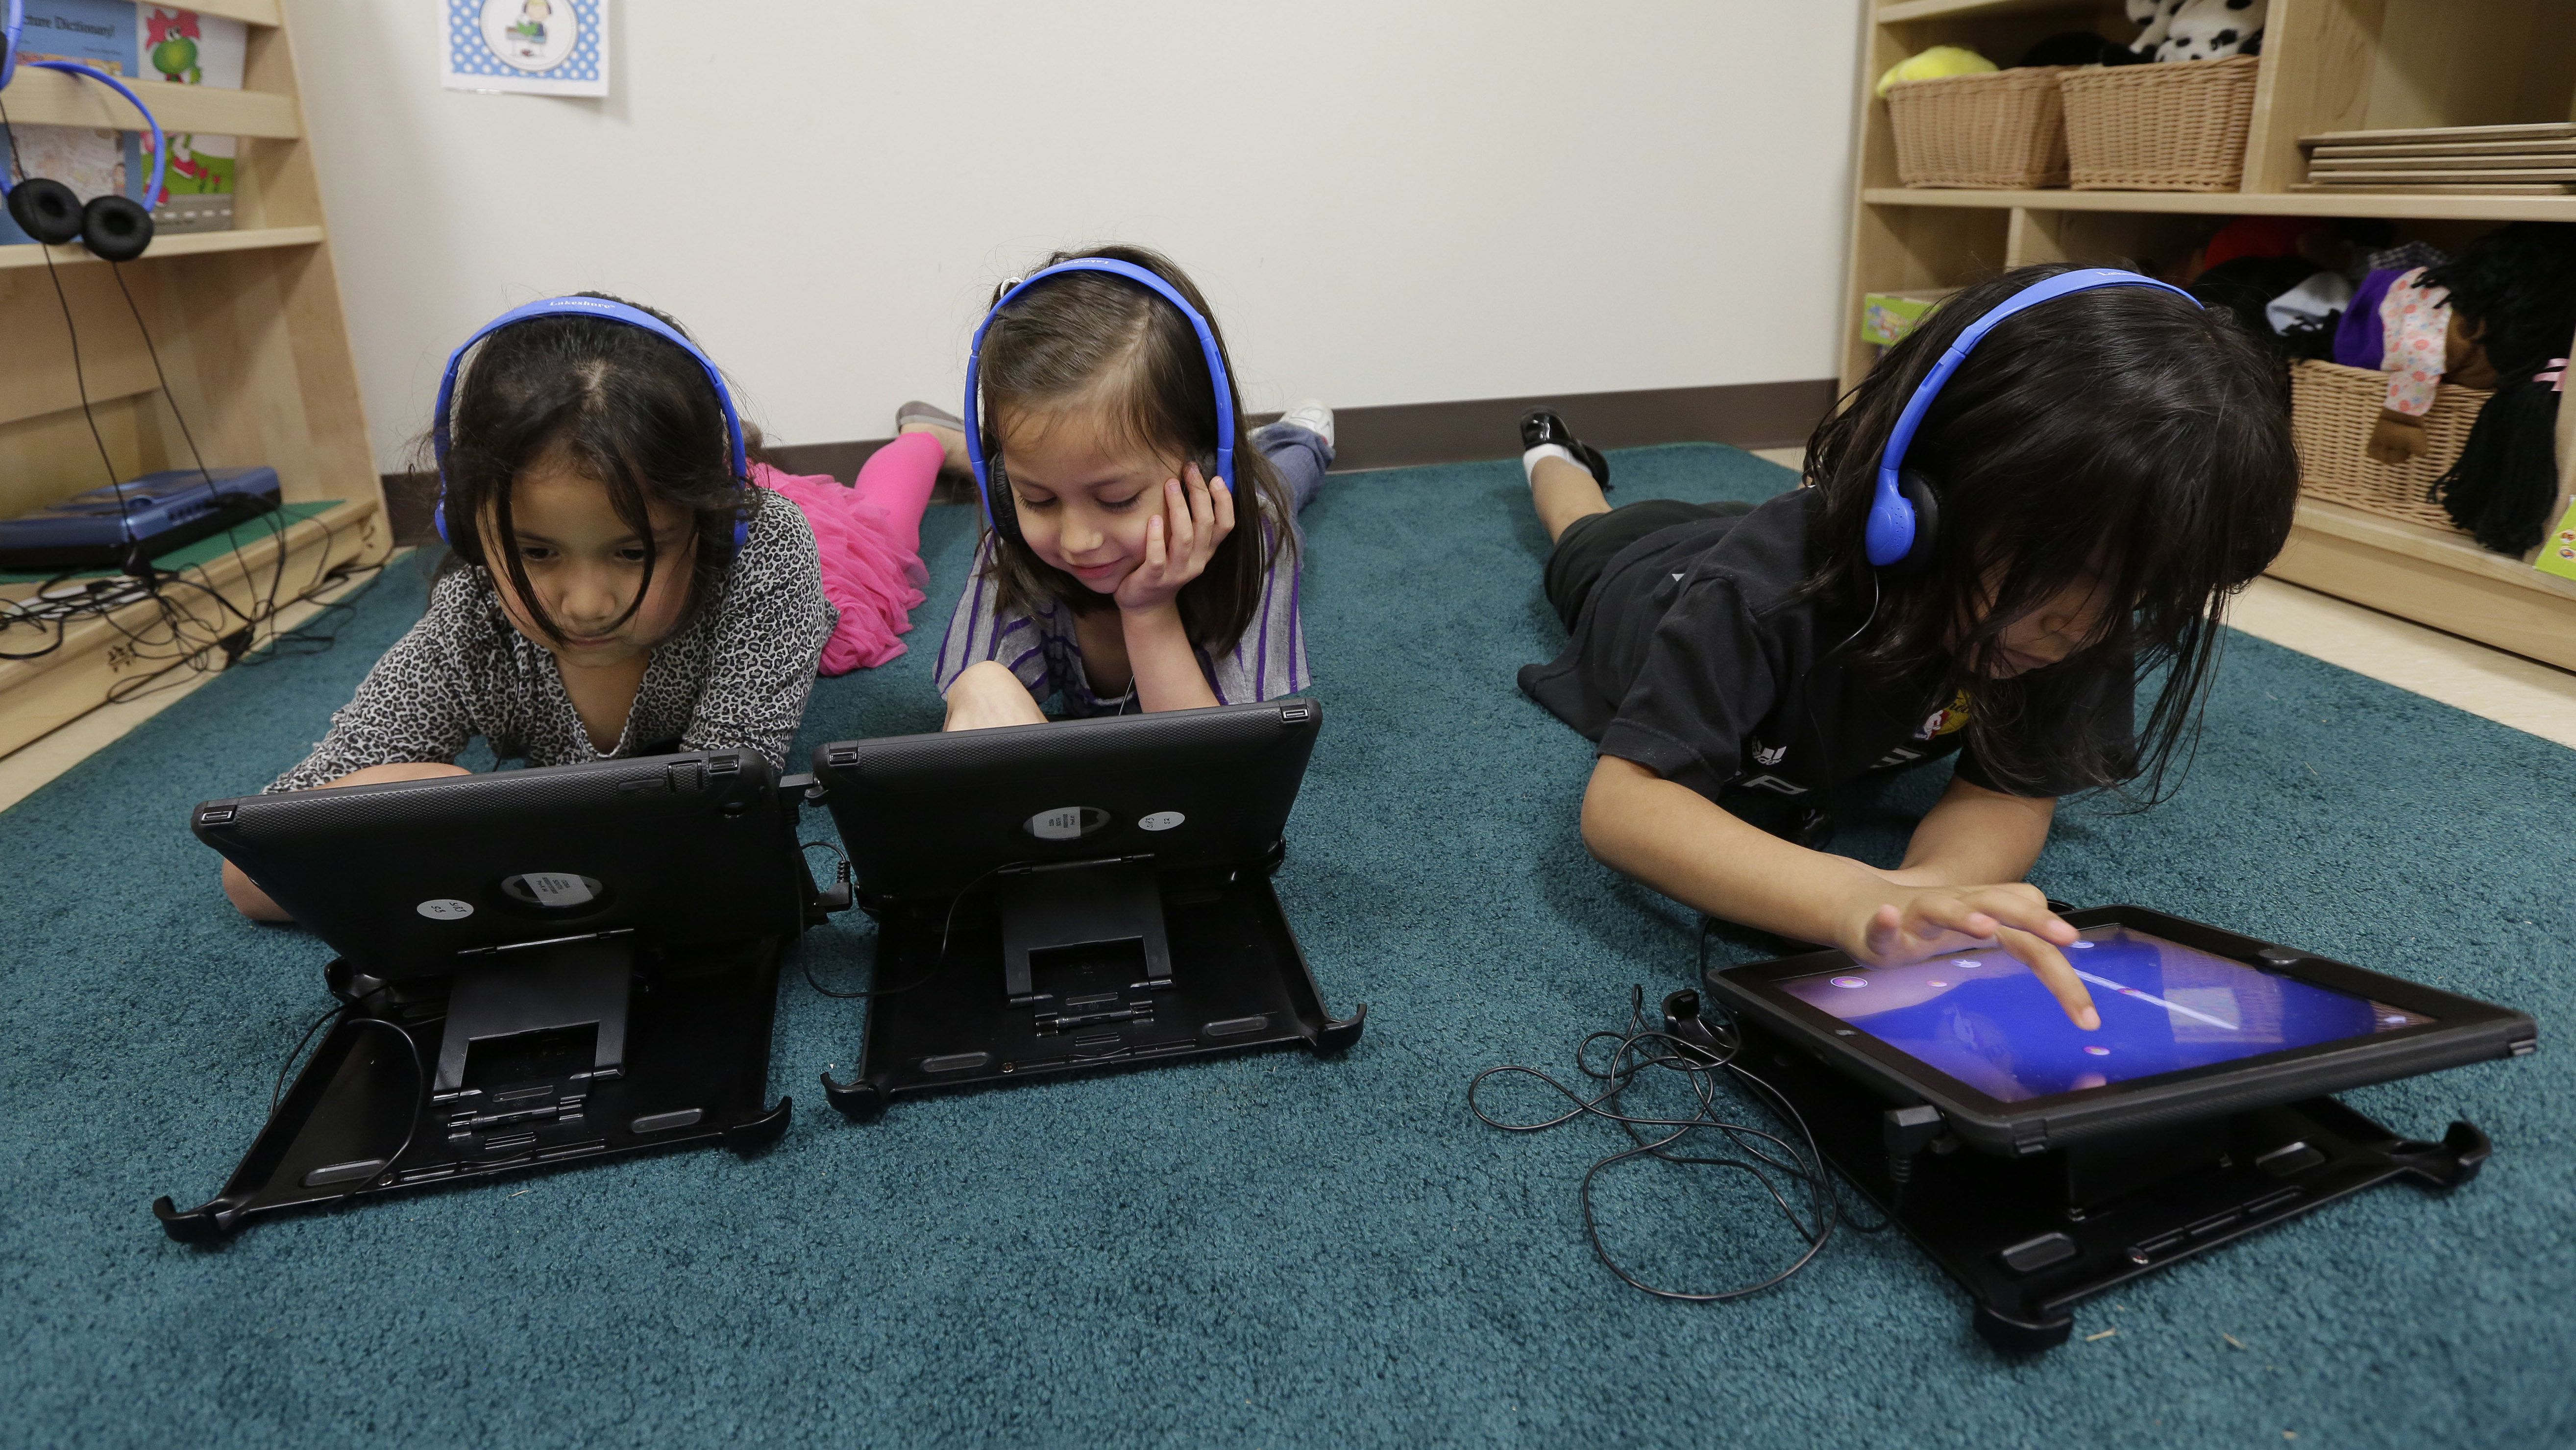 FILE - In this April 2, 2014 file photo, Pre-K students use electronic tablets at the South Education Center, in San Antonio. As Gov. Rick Perry wraps up a record 14 years on the job, Republican Greg Abbott and Democrat Wendy Davis are both vowing to make public schools a top-line agenda if elected in November. Following through could make public schools a signature issue for a Texas governor as it was under George W. Bush, before he left for the White House and used the state's testing system as the framework for No Child Left Behind. (AP Photo/Eric Gay, File)